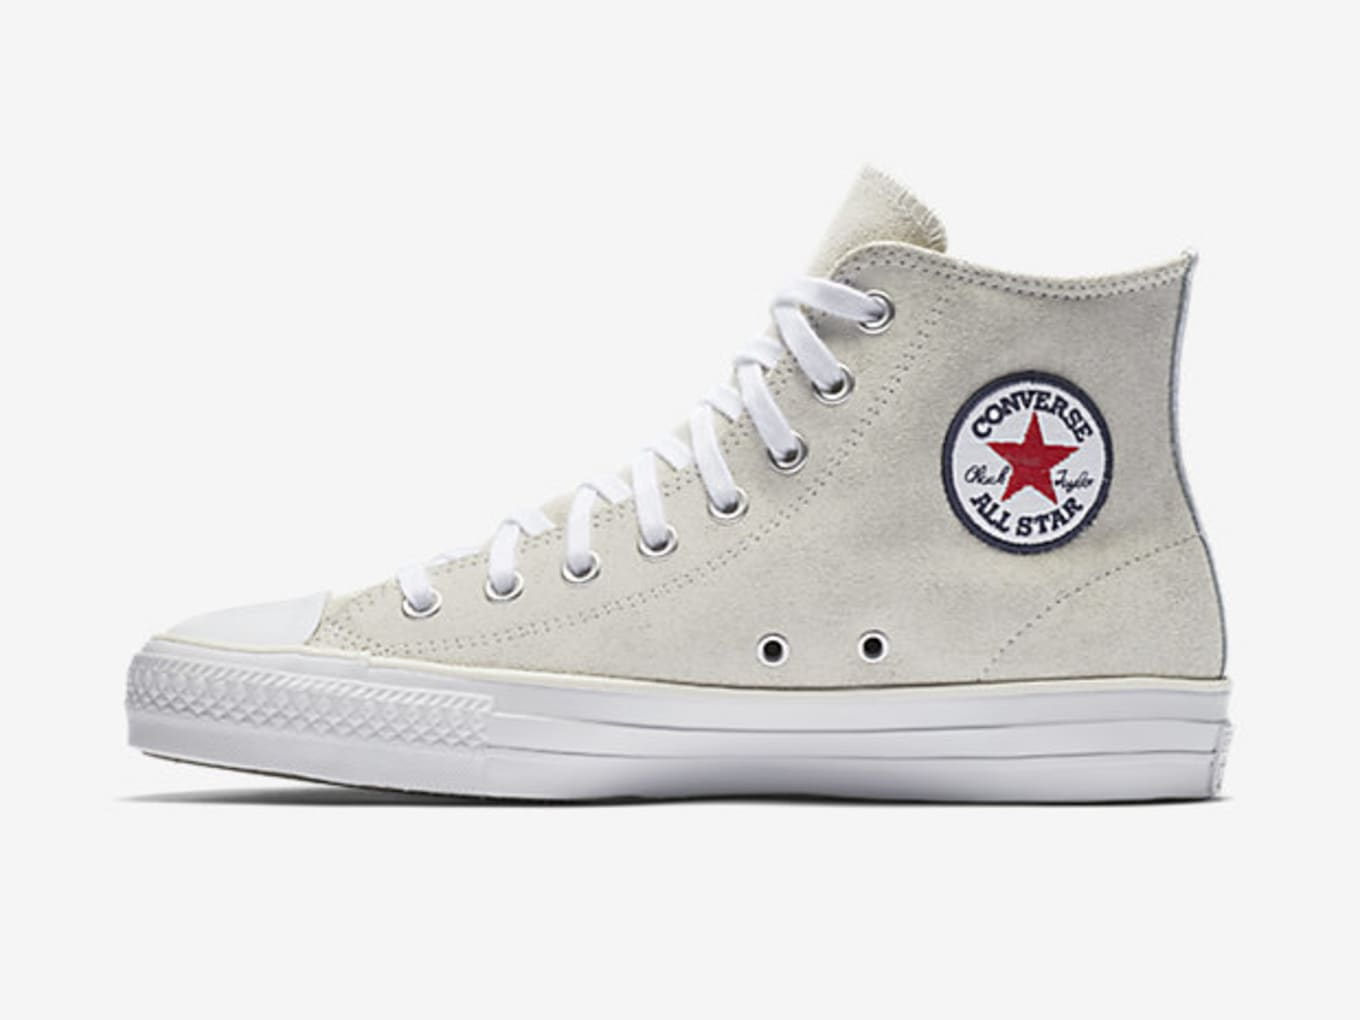 ec31a79ef0cc Louie Lopez x Converse Chuck Taylor All Star Pro High Top